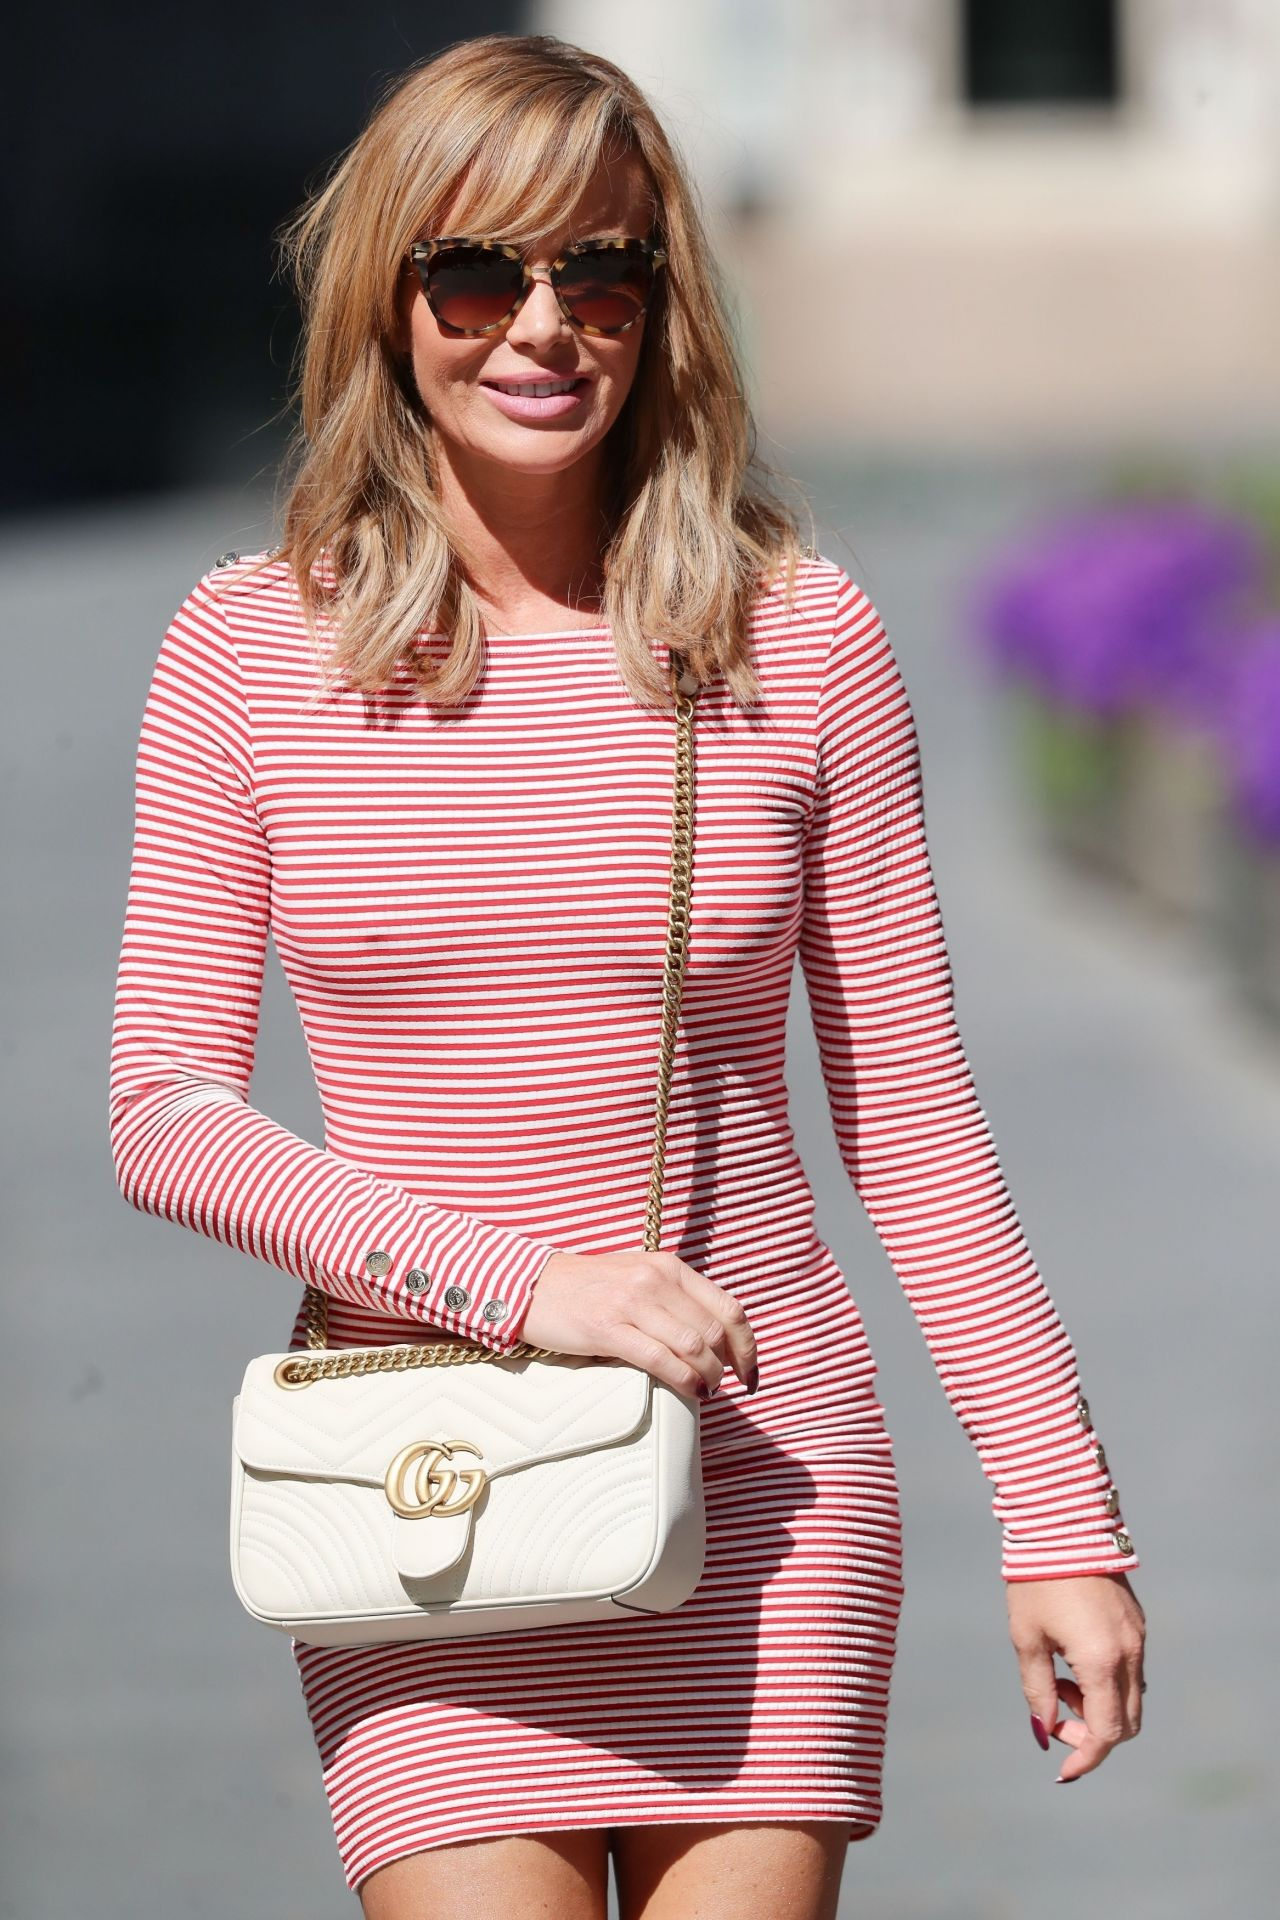 Amanda Holden Shows Off Her Legs In A Tight Red And White